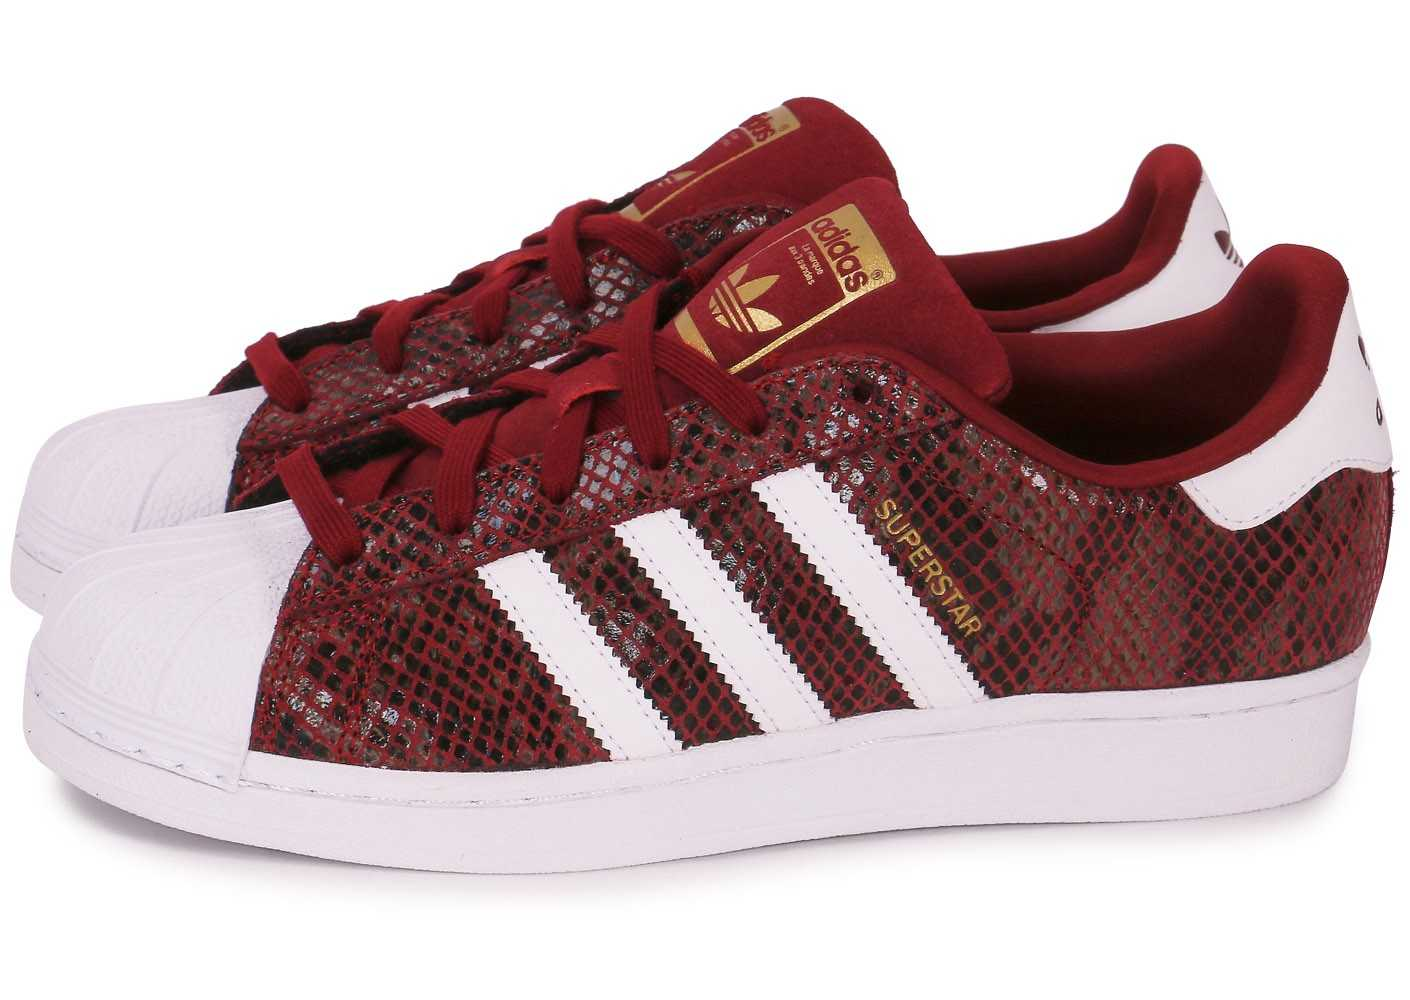 sneakers femme adidas superstar bordeaux